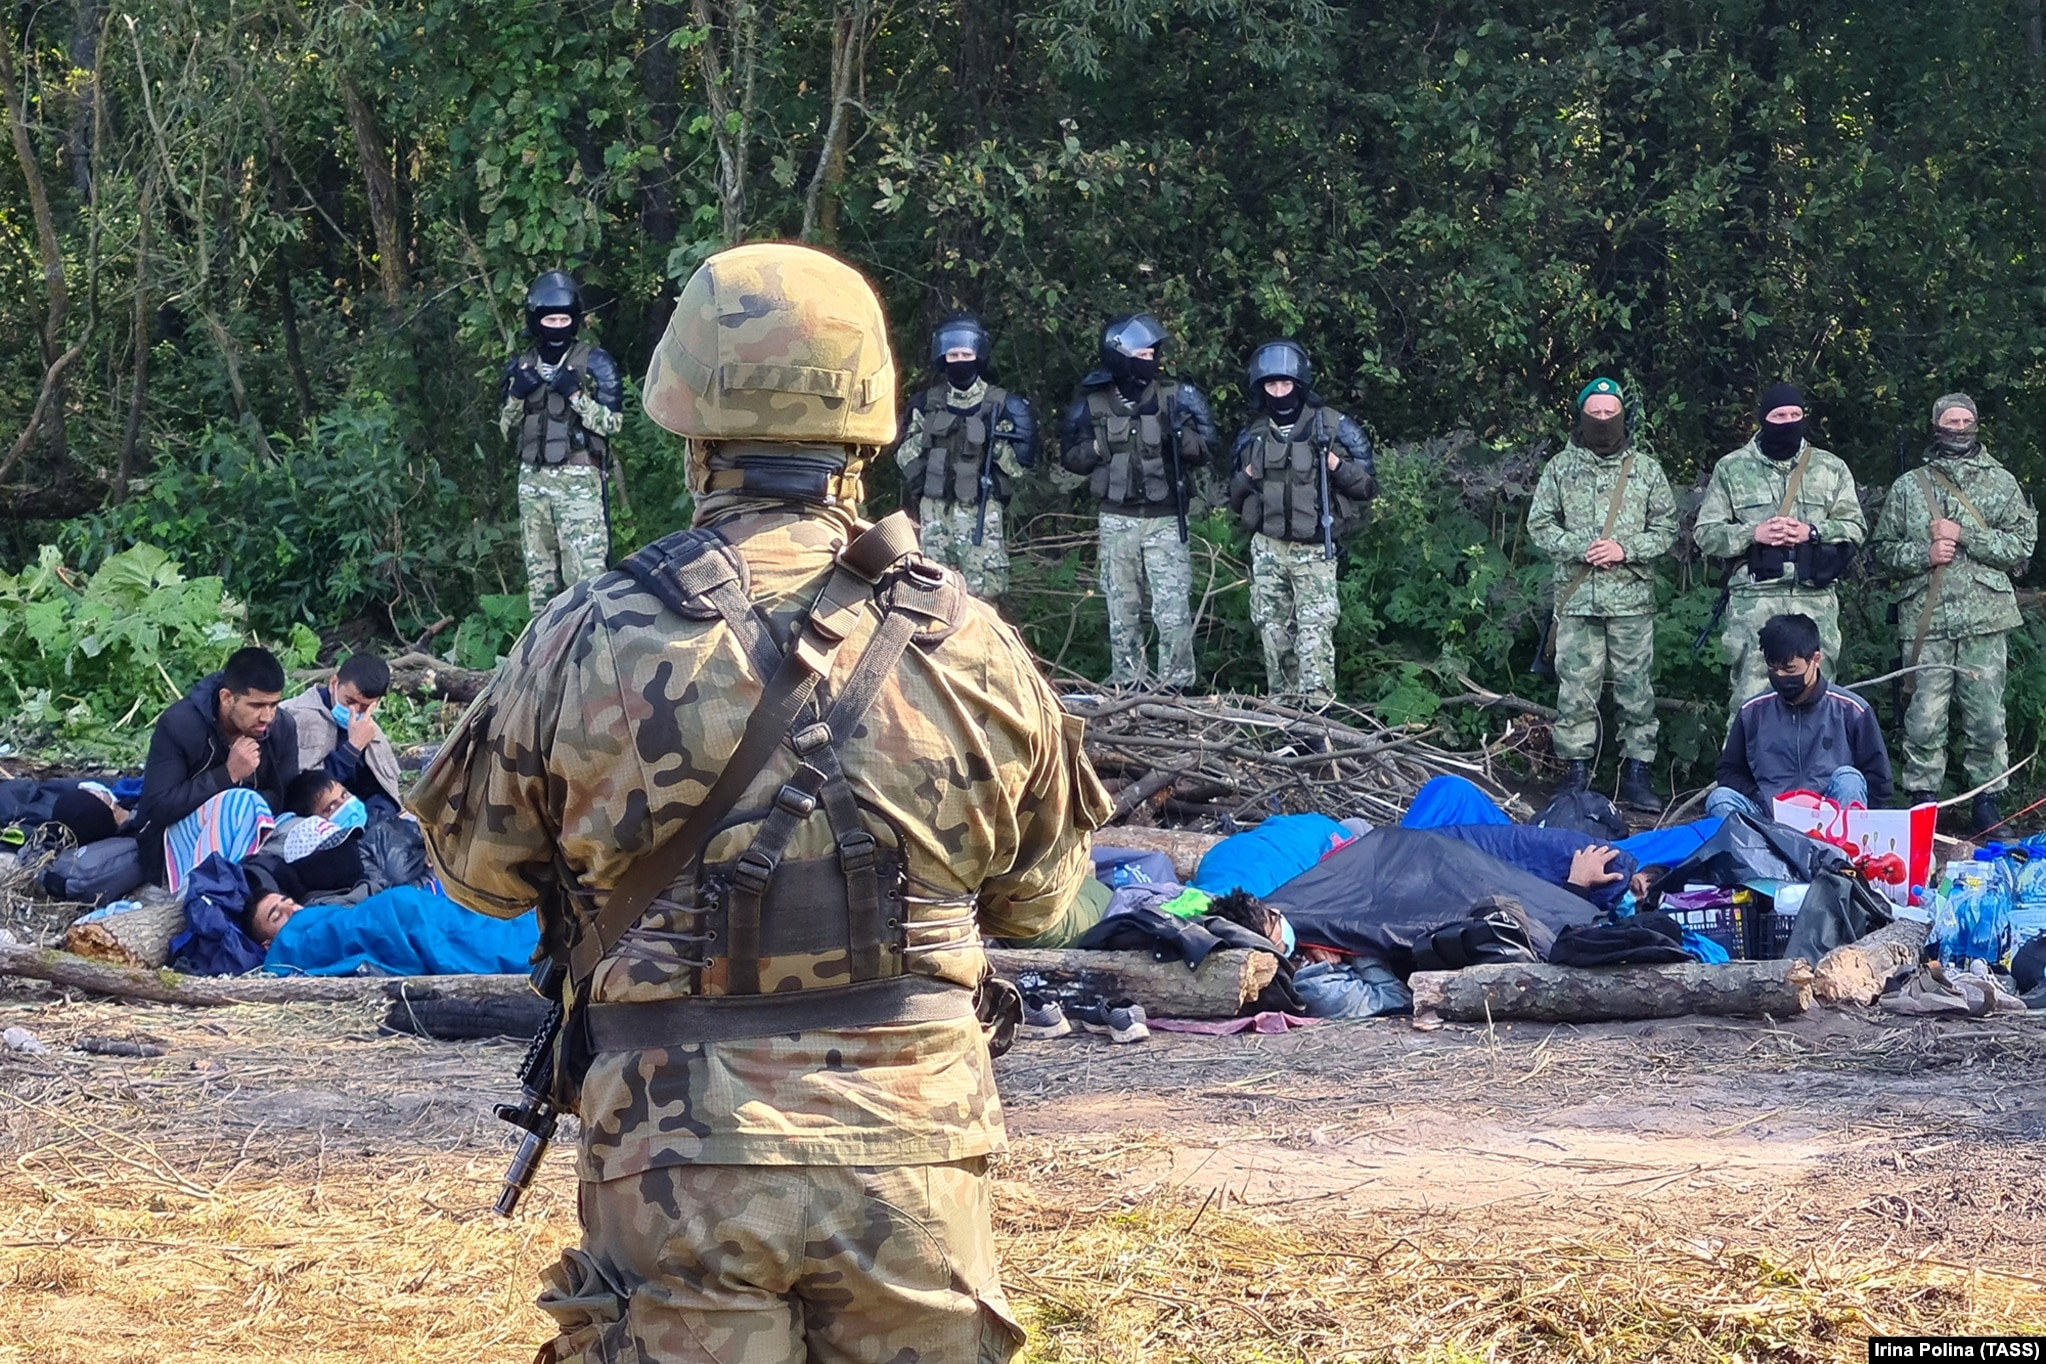 The group of migrants, photographed between an armed Polish serviceman (in foreground) and Belarusian police. The standoff comes amid a surge in mostly Middle Eastern migrants entering the EU illegally from Belarus. European authorities accuse Minsk of deliberately engineering the crisis as a reaction to sanctions imposed by the EU since Belarusian strongman Alyaksandr Lukashenka's crackdown began following a disputed election one year ago.